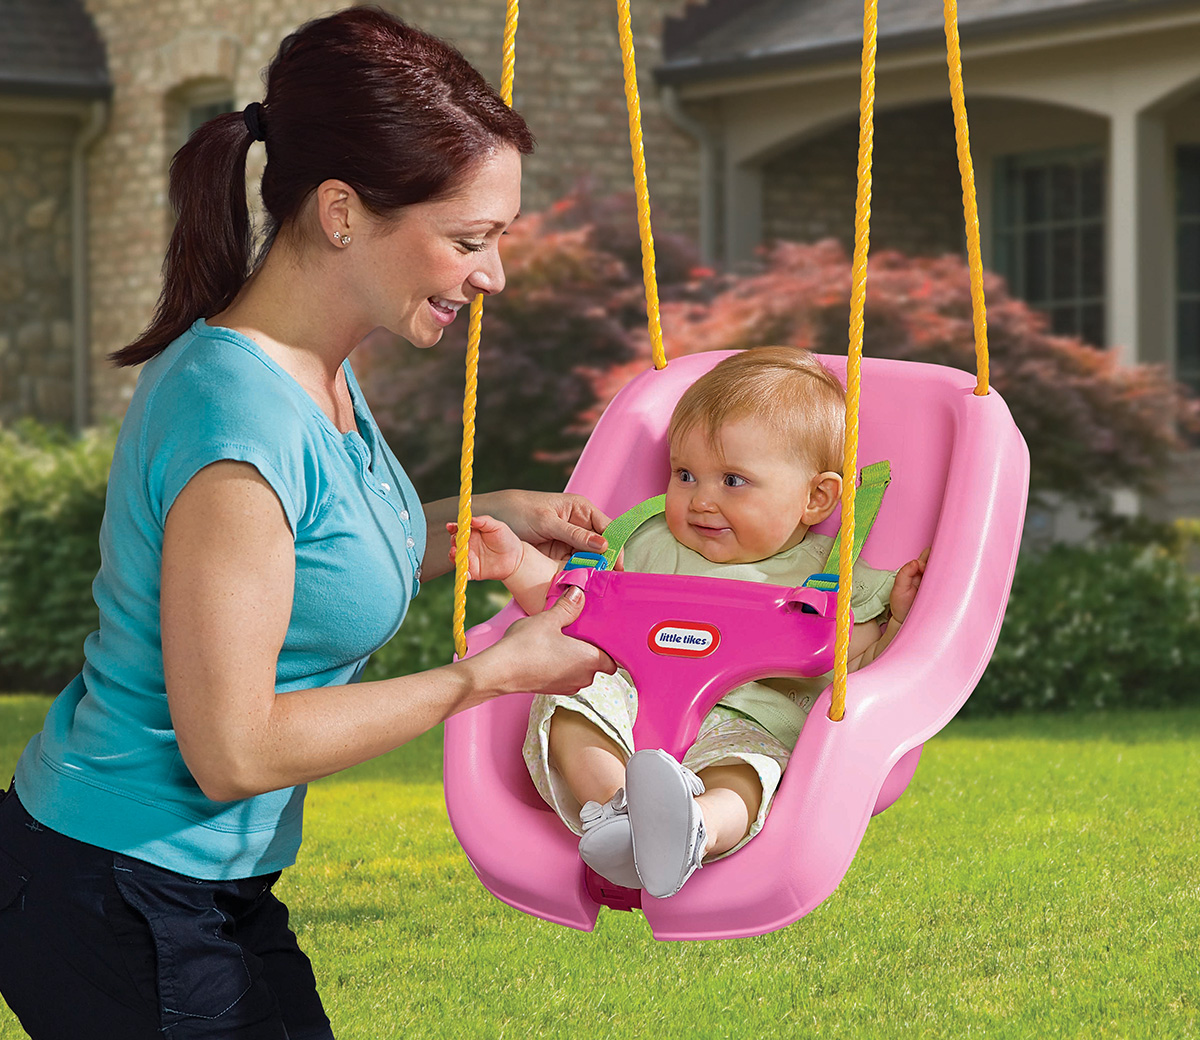 Sway N Play Activity Gym Little Tikes Fisher Price Snug Glow Sea Horse Pink 2 In 1 And Secure Swing